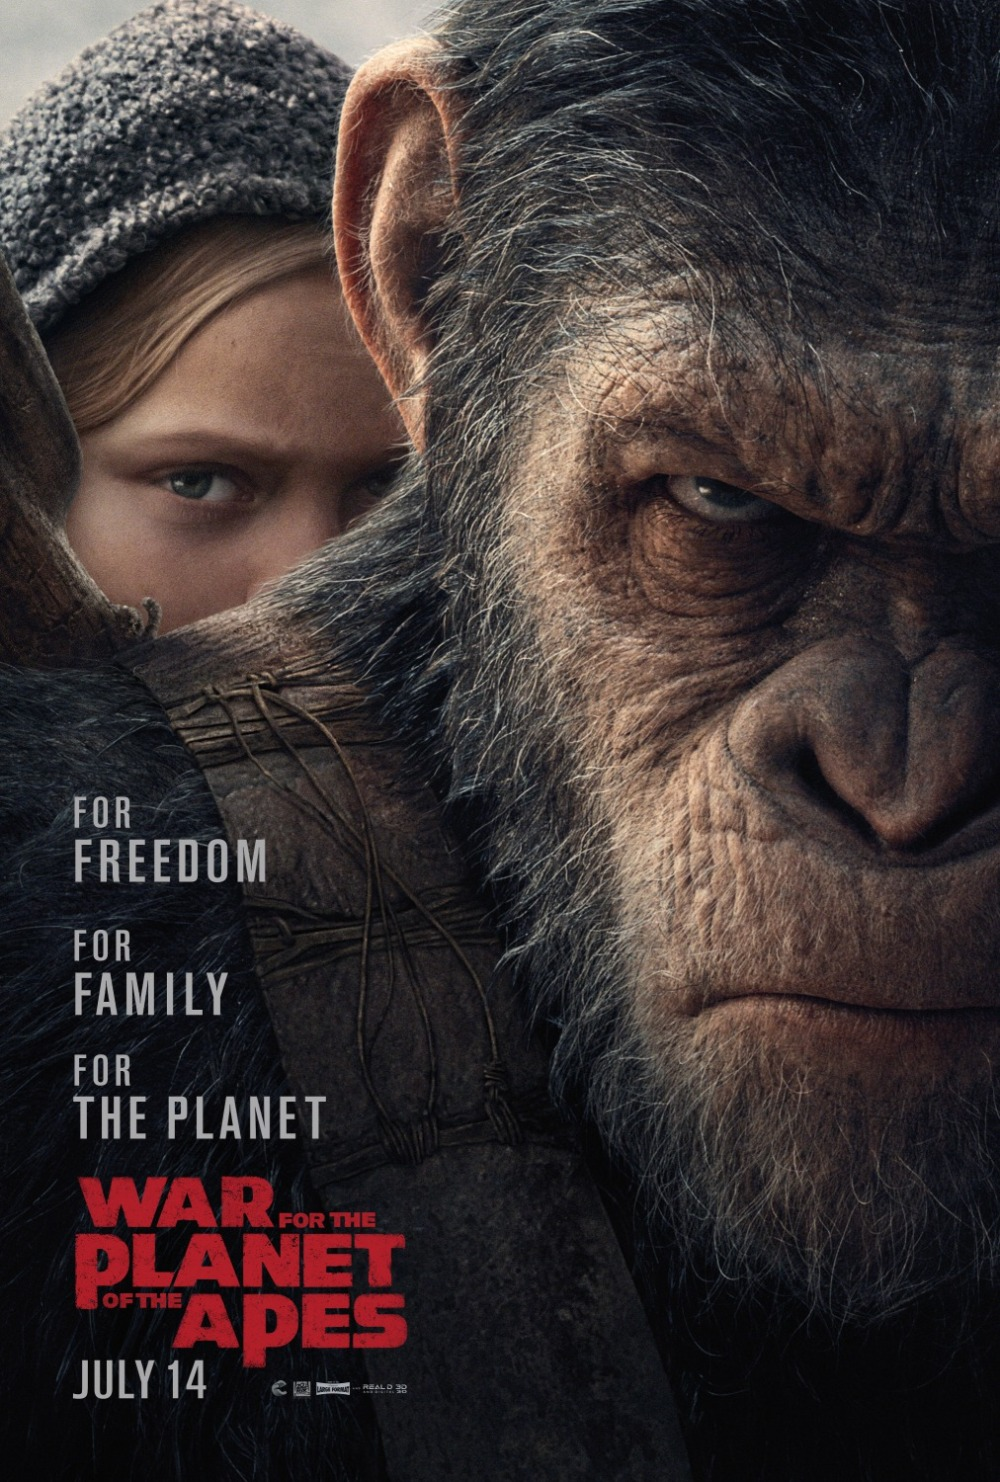 war_for_the_planet_of_the_apes_poster_small